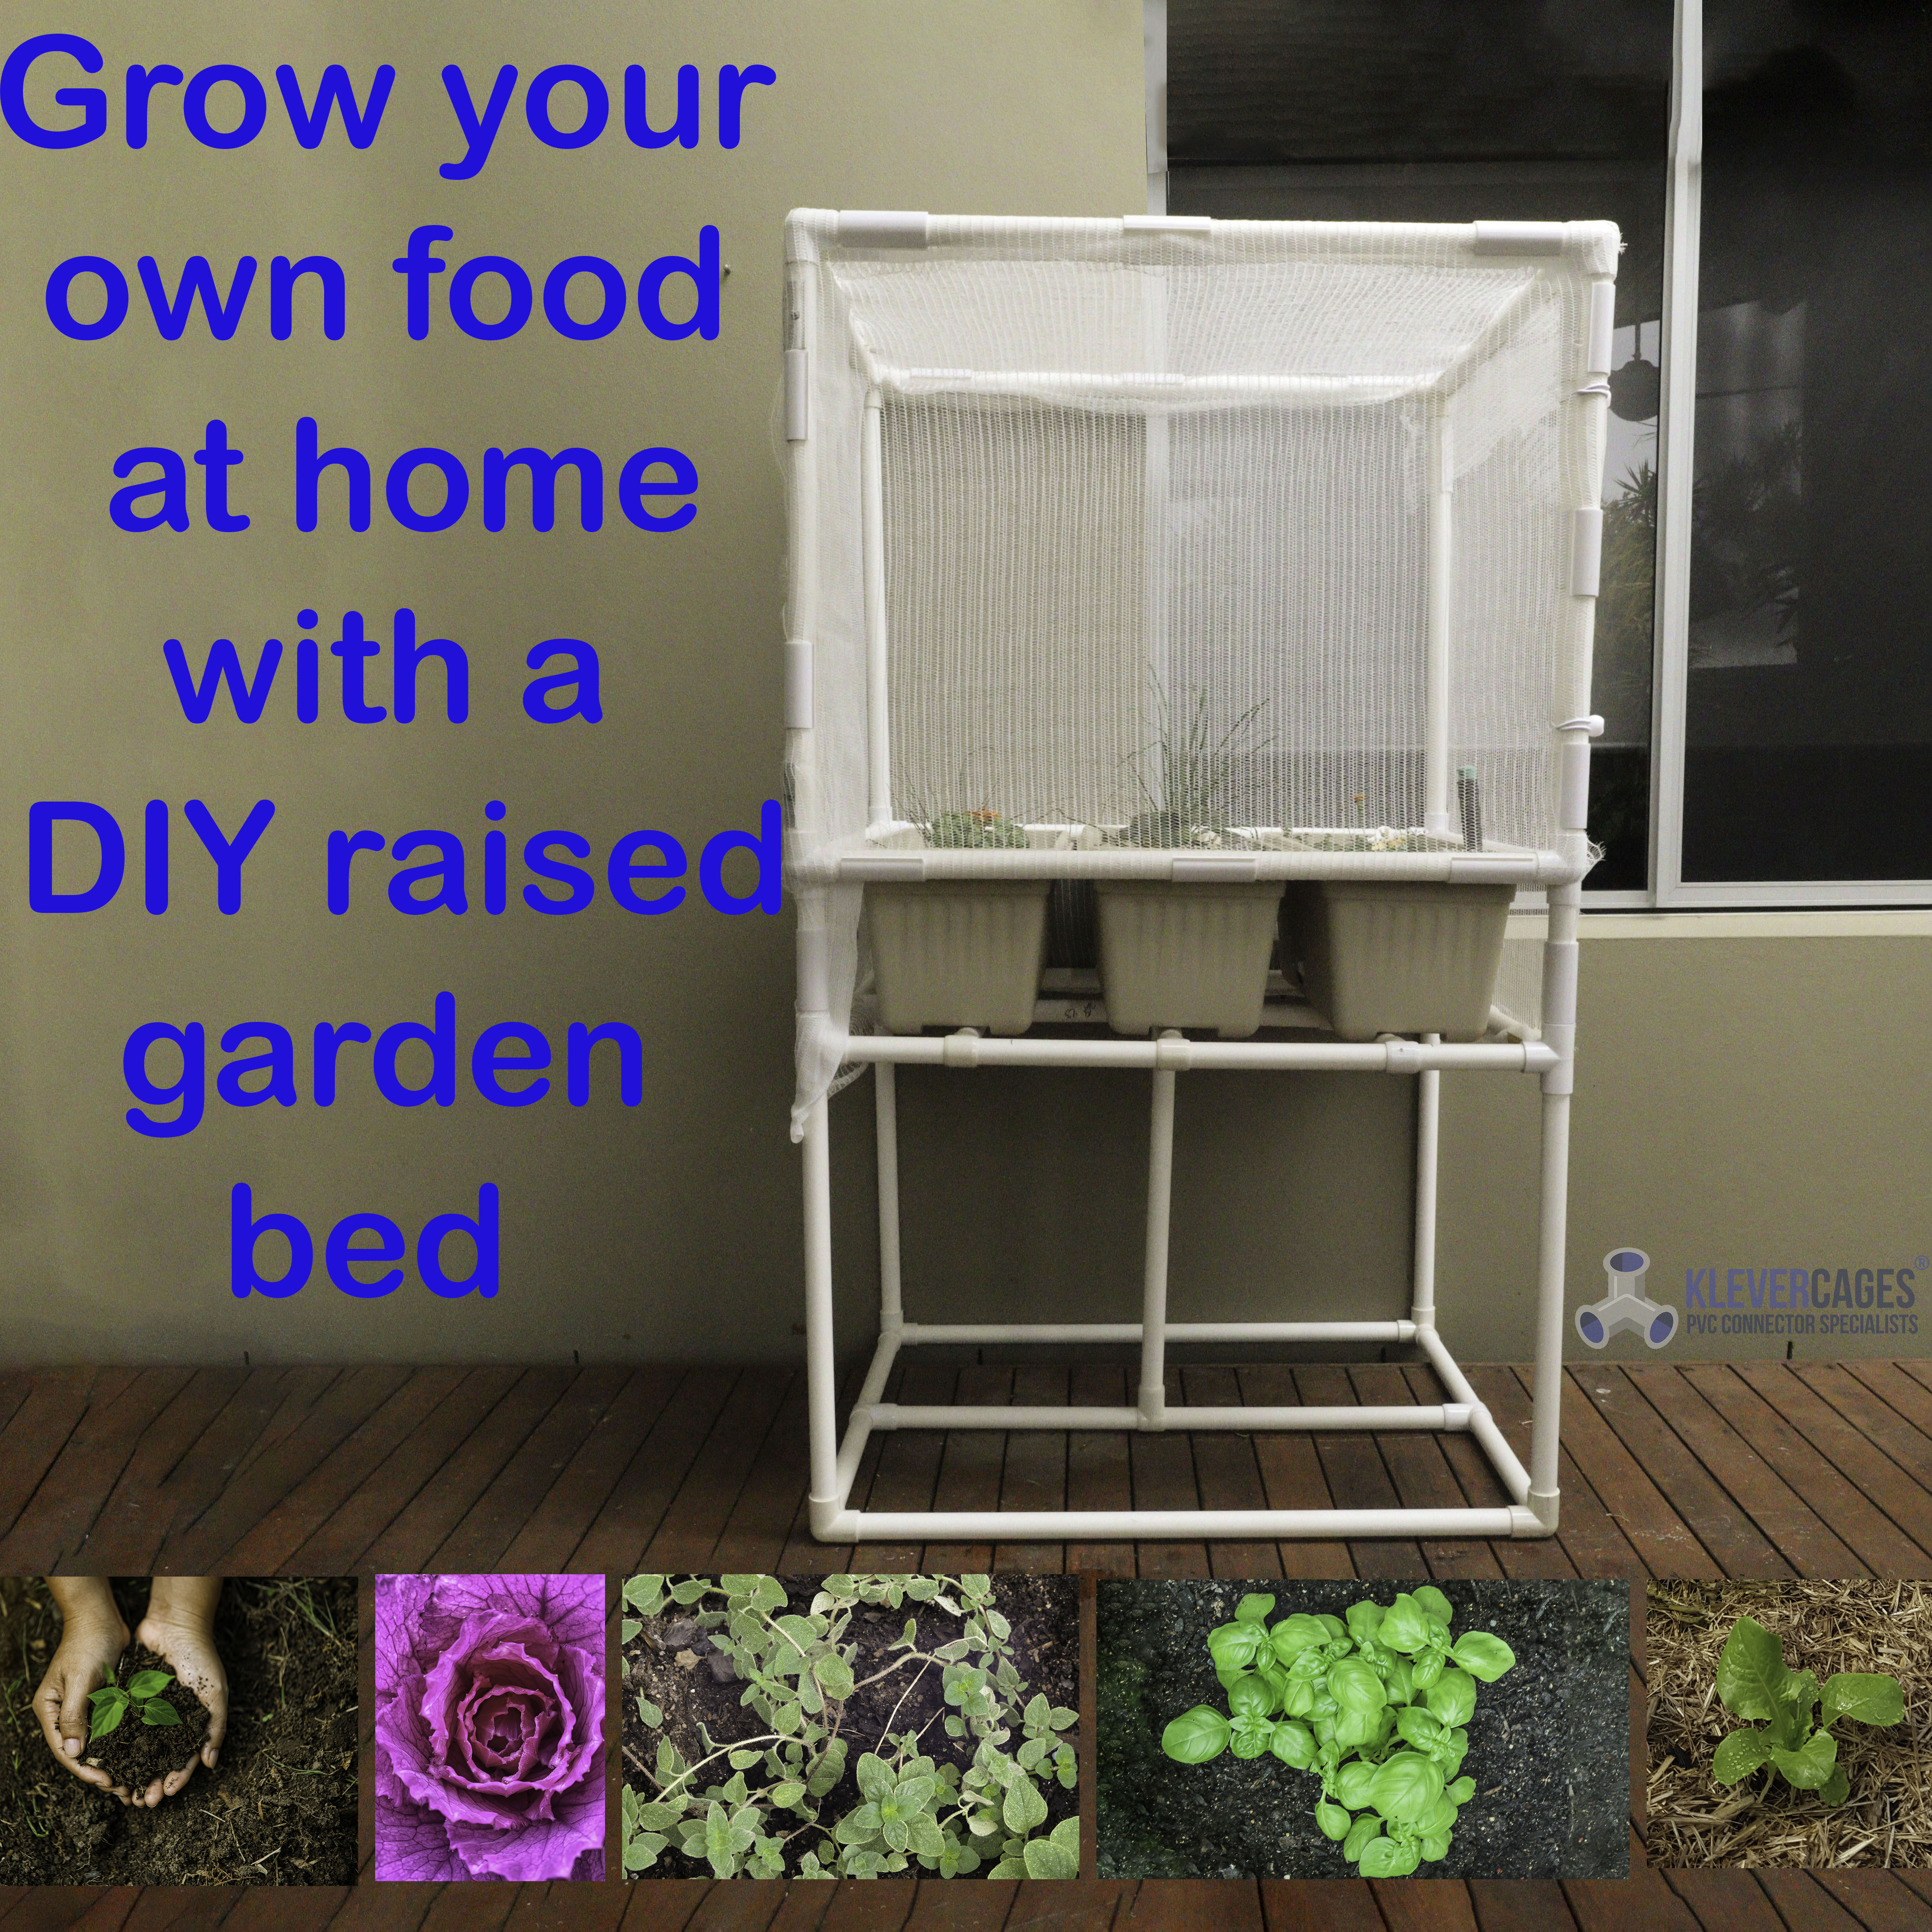 DIY raised garden bed frame built with a PVC pipe and Klever Connector frame covered with bird exclusion netting secured with snapclamps